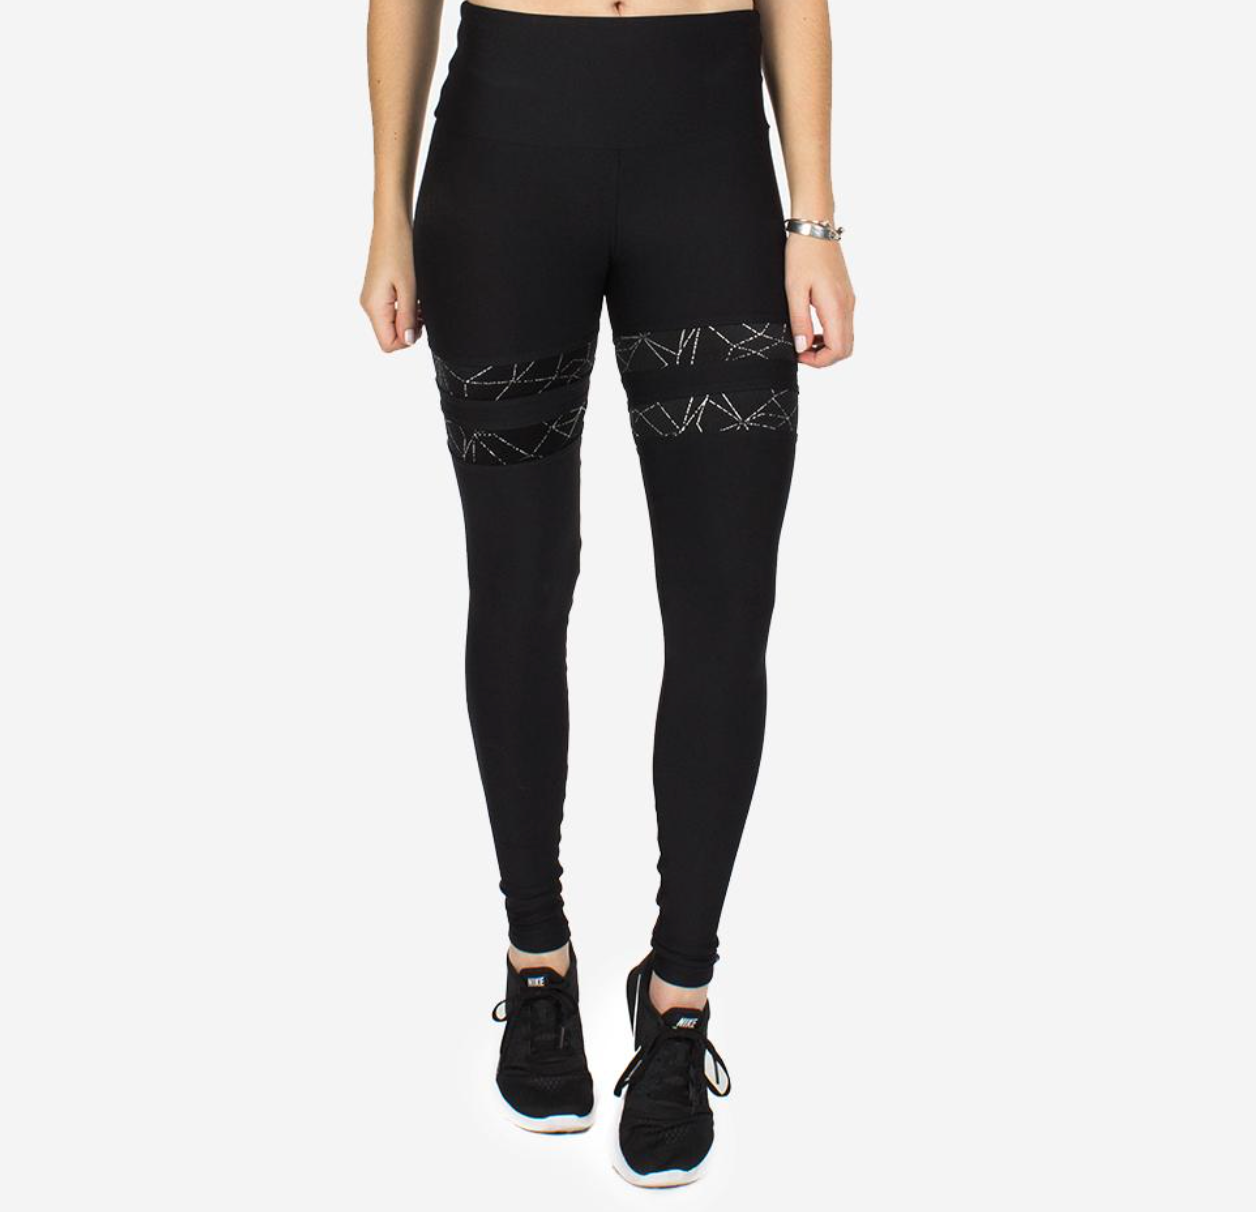 Sample Rack - Reflective Apex Leggings - M